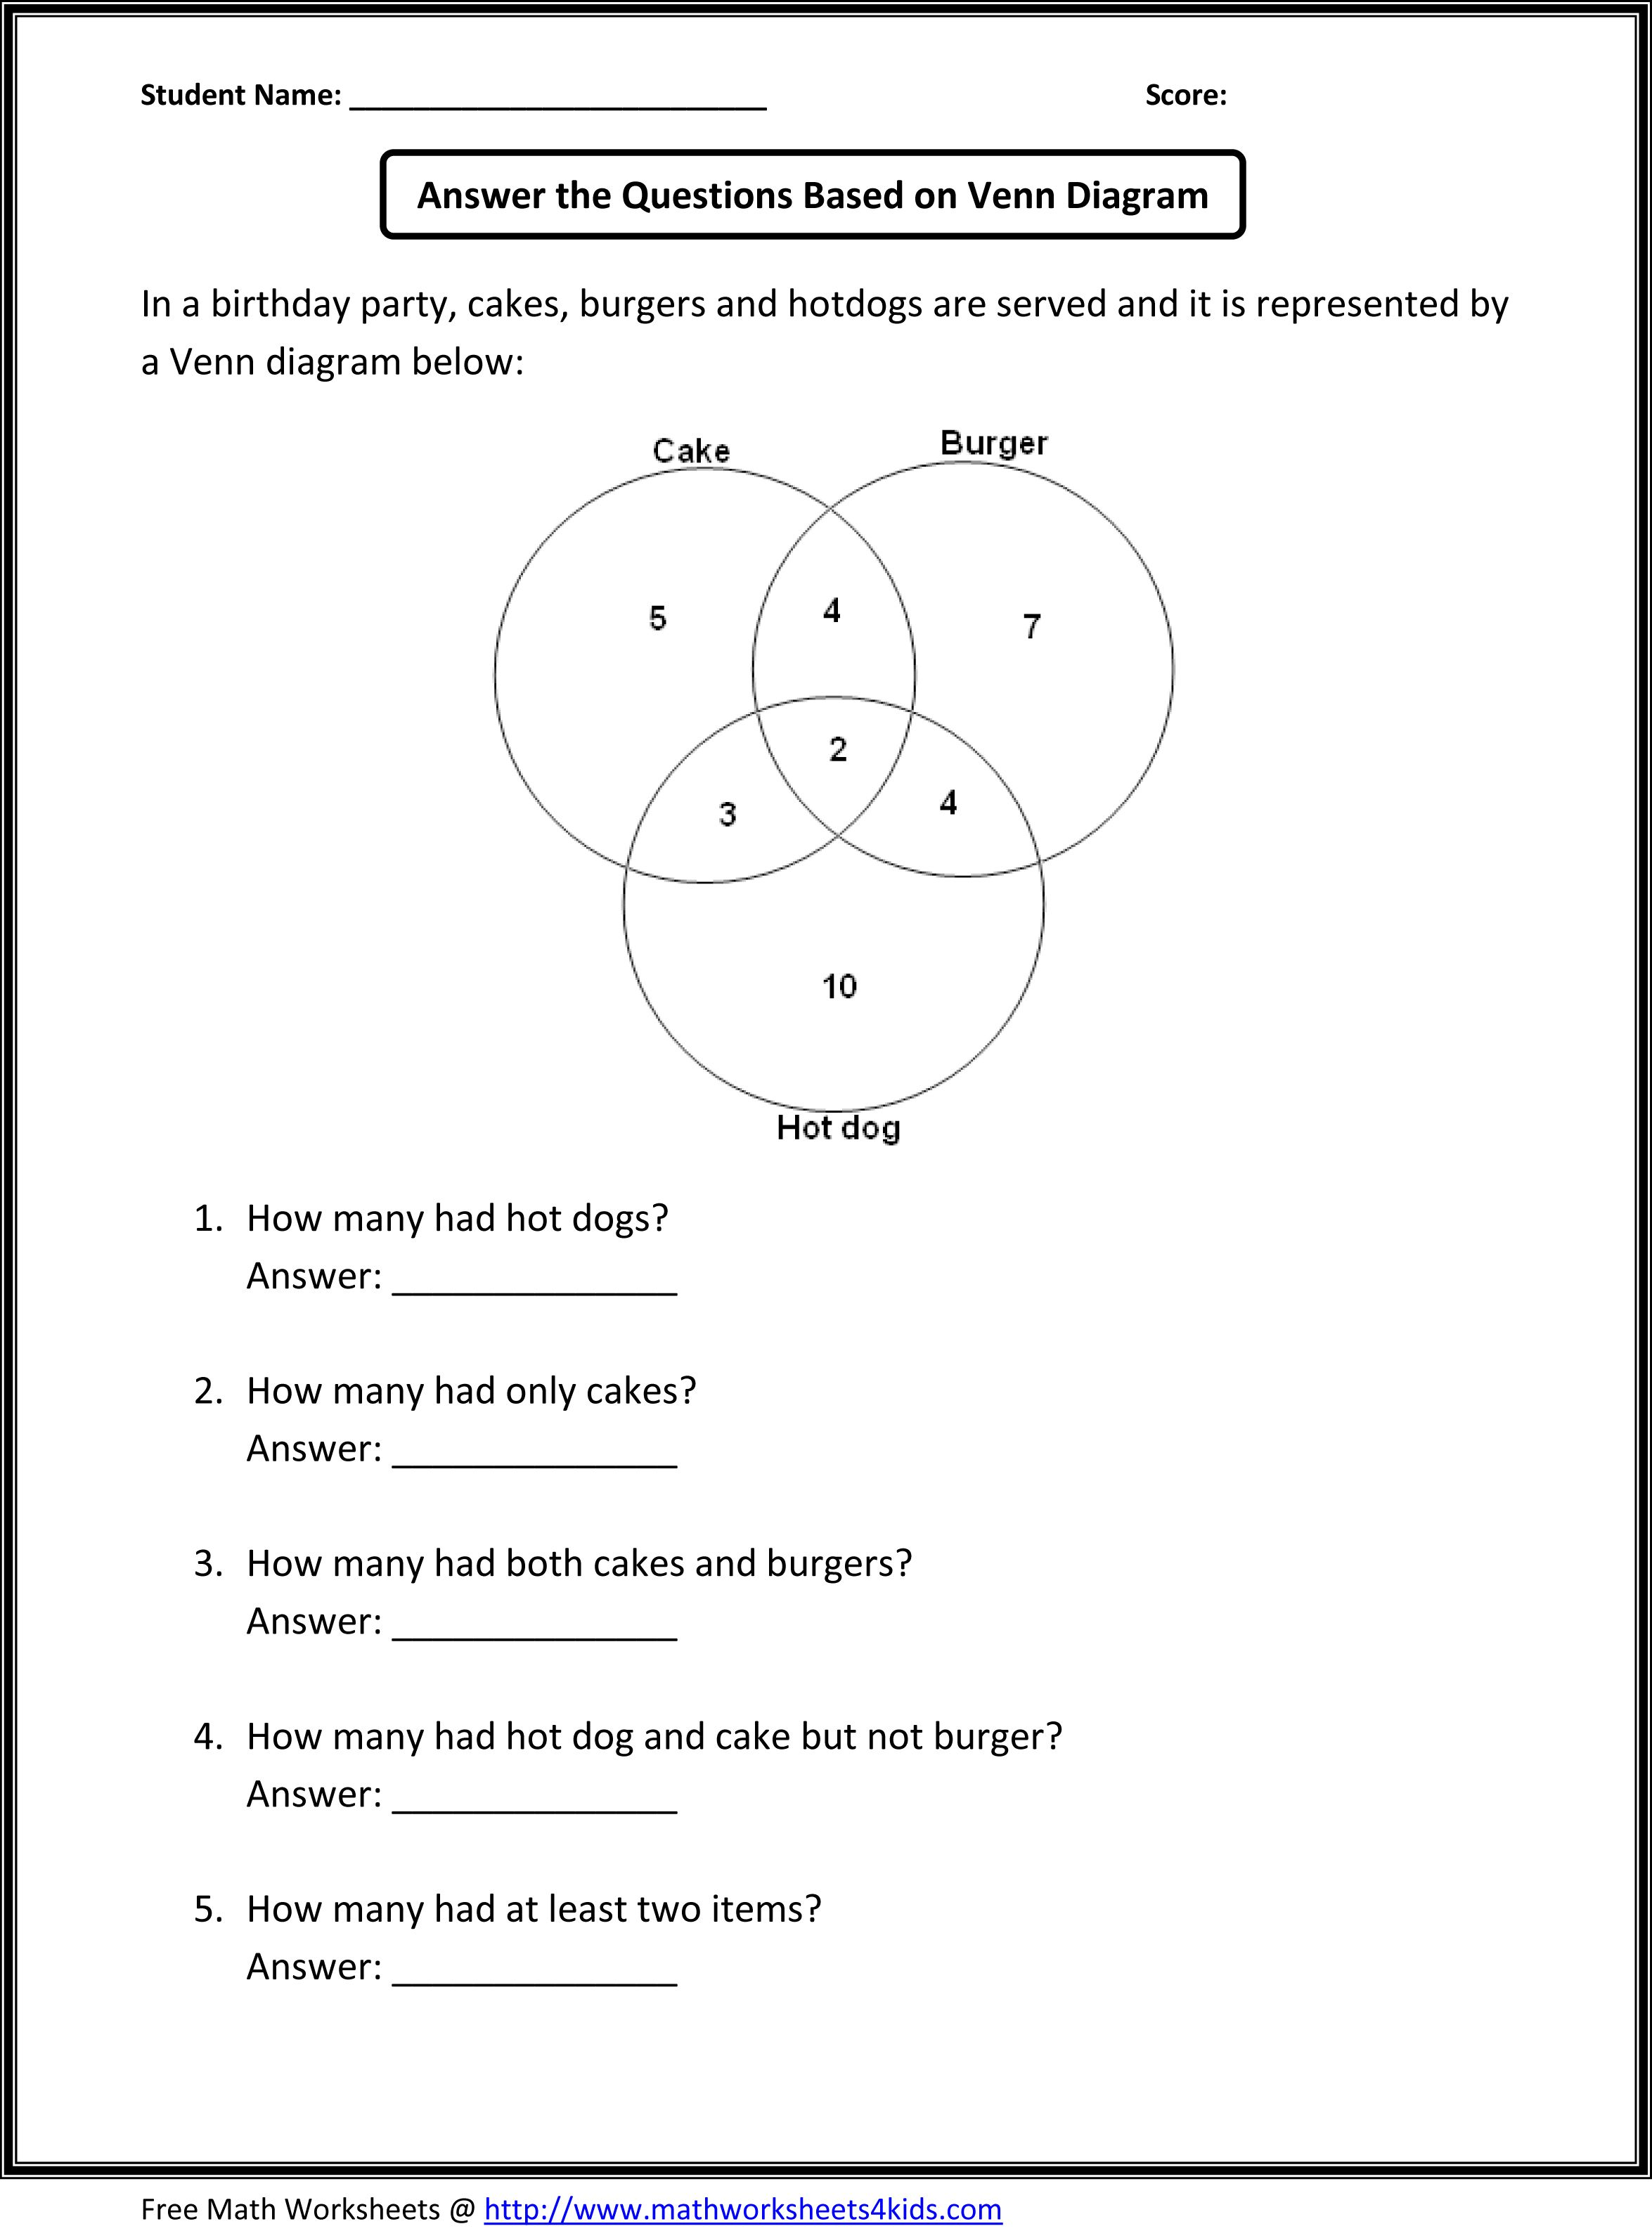 Worksheet 5th Grade Math Problems Worksheets venn diagram word problems school pinterest math 49cb5df227bebe37462741b3a6a98a45 jpg